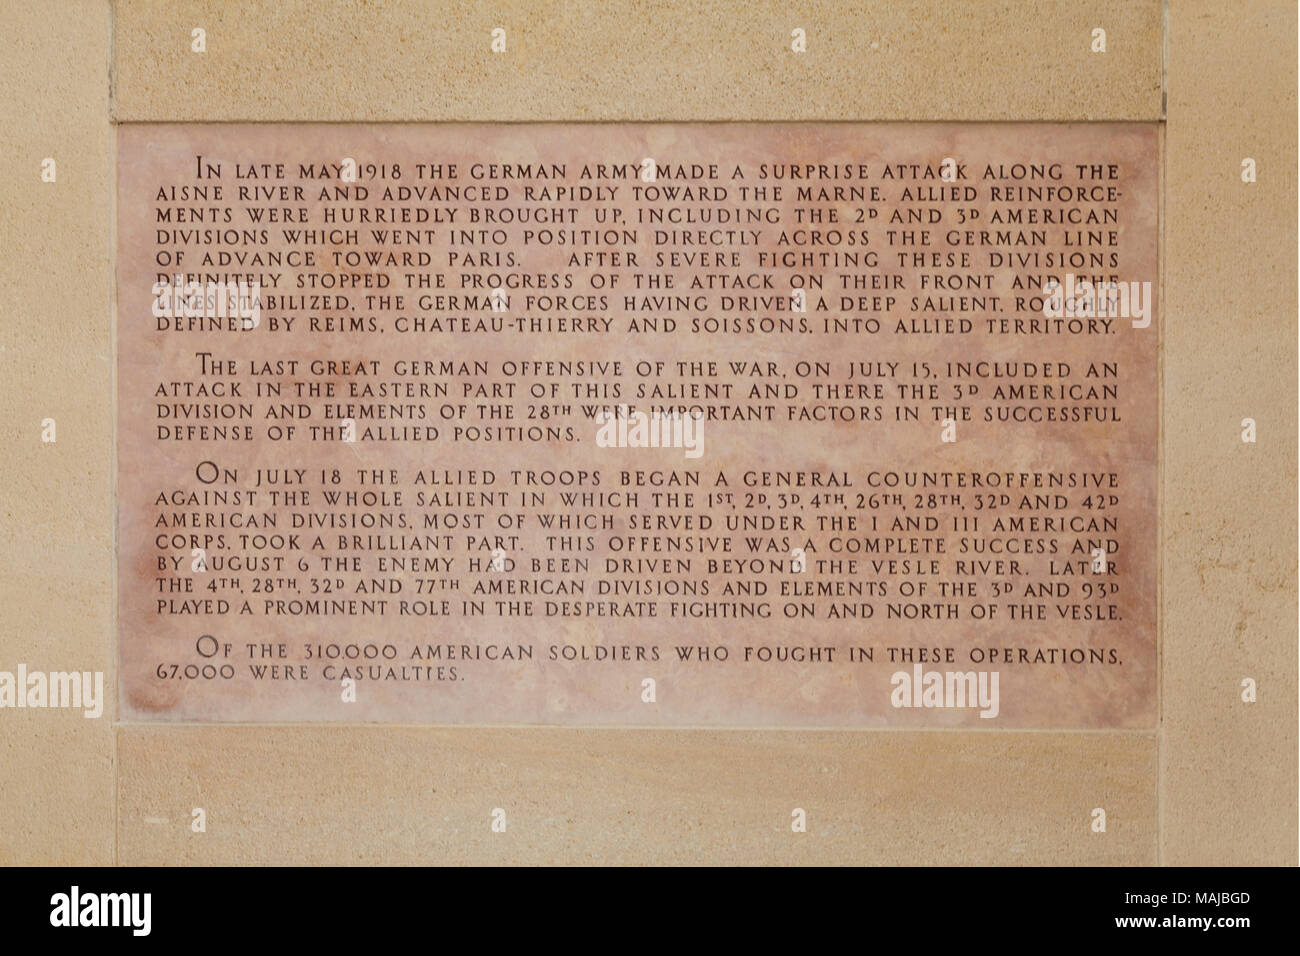 The Château-Thierry American Monument - dedication in English language. - Stock Image